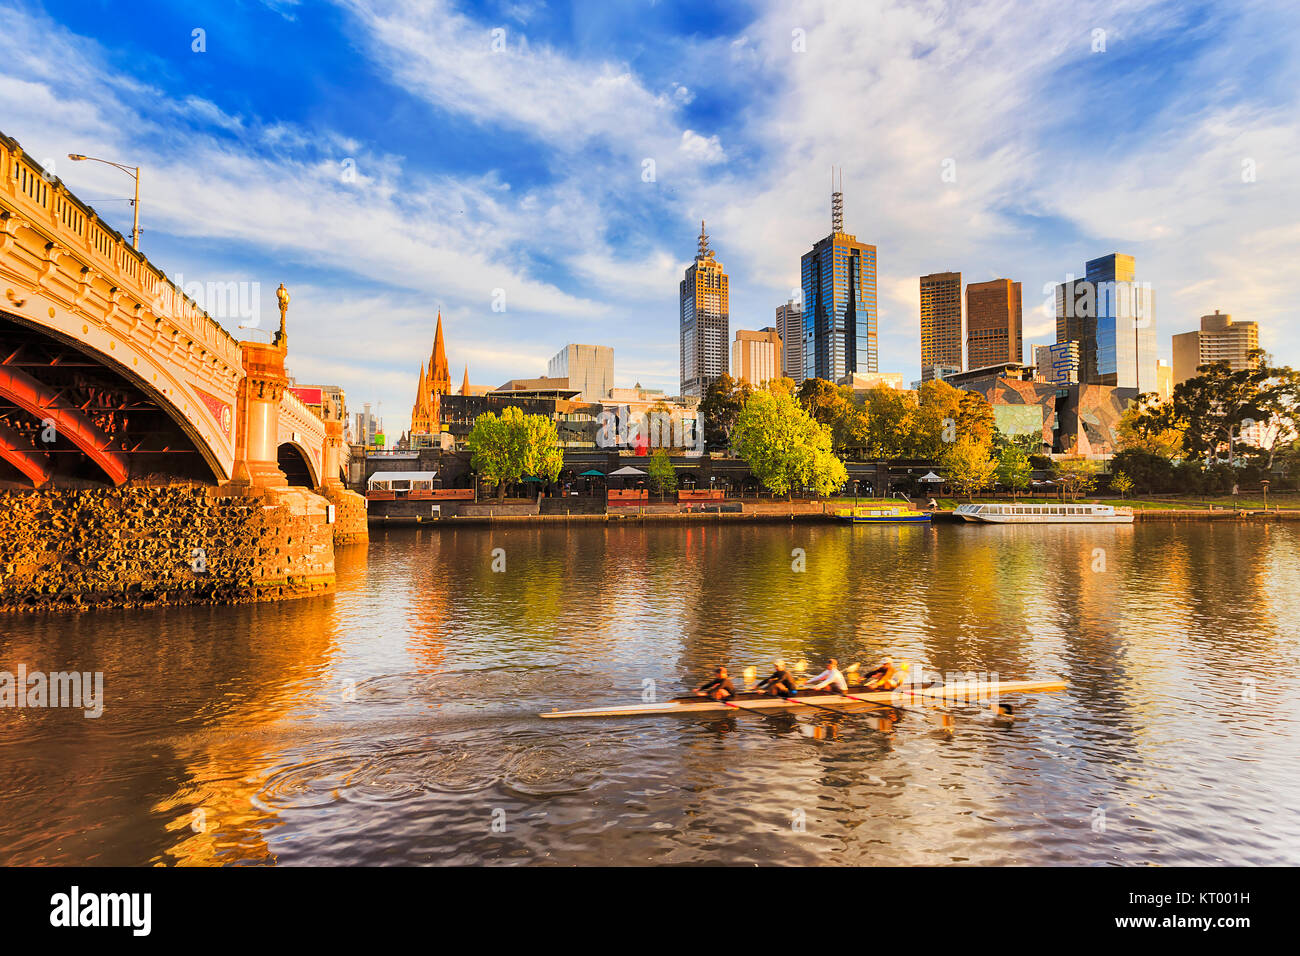 Golden sunlight and morning hour over Melbourne city CBD landmark high-rise towers on waterfront of Yarra river - Stock Image